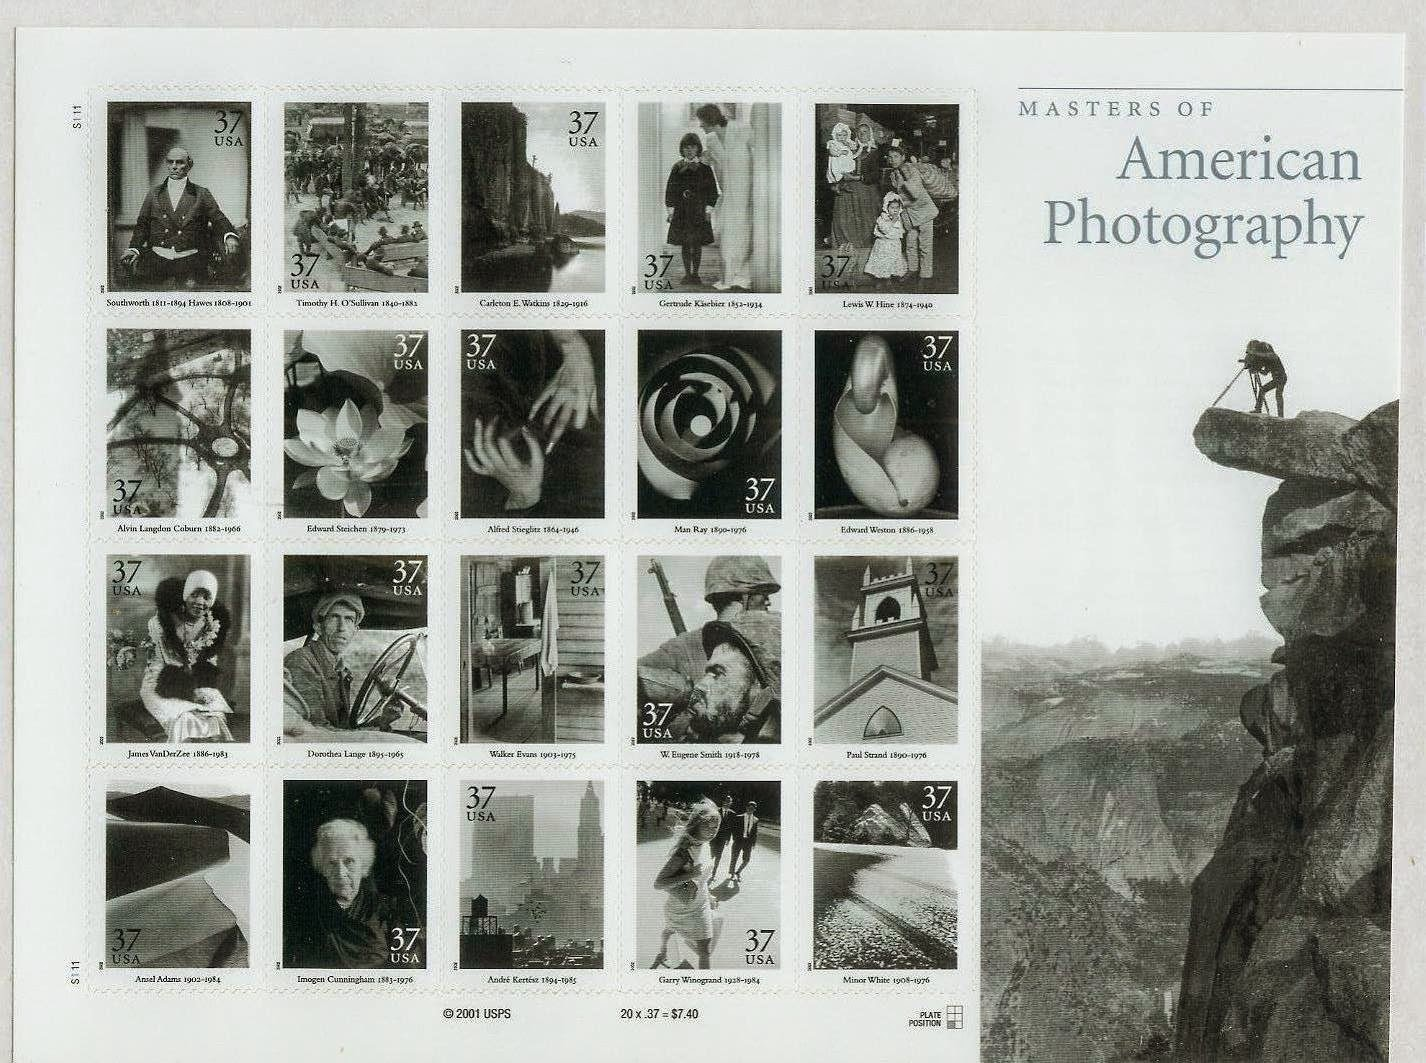 Masters of American Photography Collectible Stamp Sheet: The Postal Service issued twenty 37-cent Masters of American Photography commemorative stamps on June 13, 2002, in San Diego, California. The pane of twenty stamps designed by Derry Noyes of Washington, DC, went on nationwide June 14, 2002...